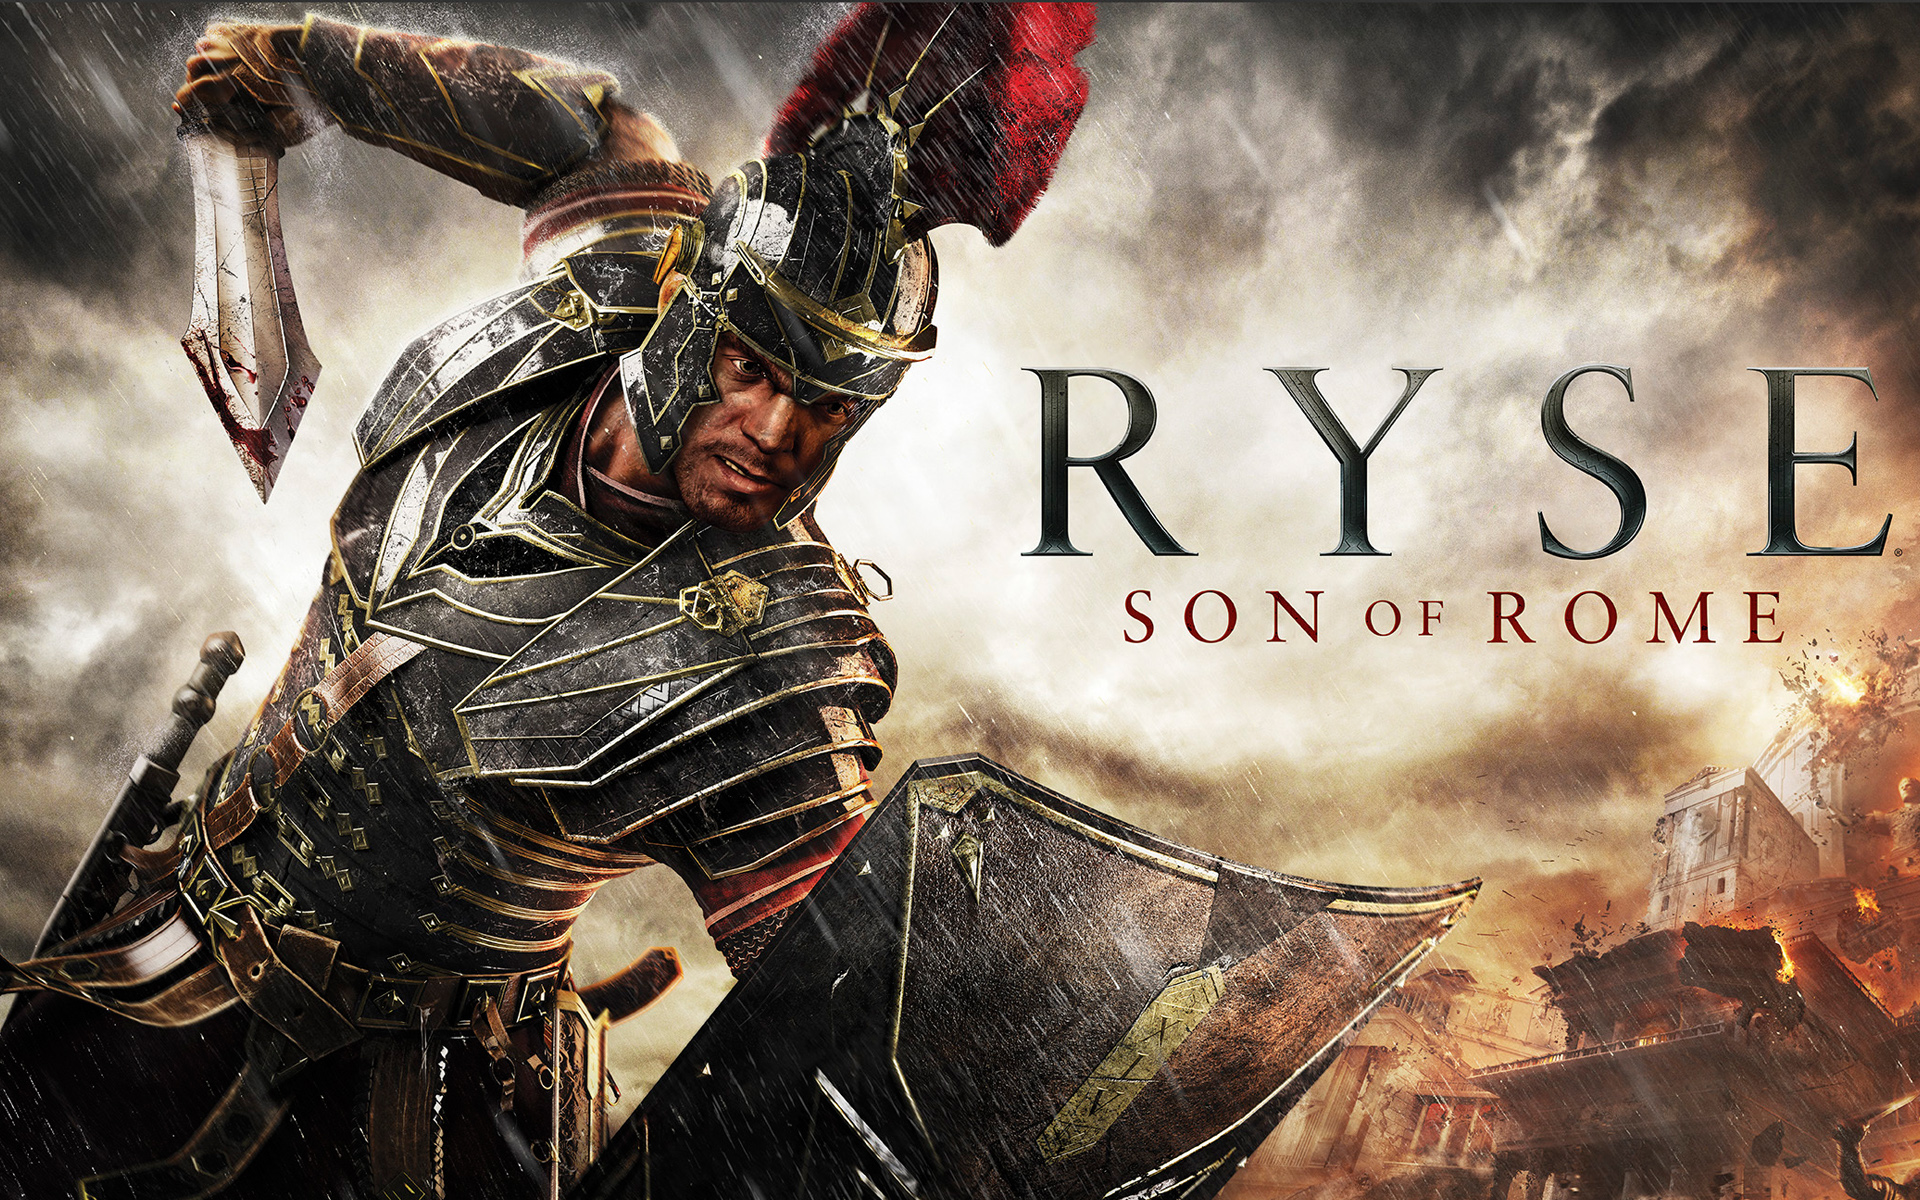 ryse_son_of_rome_game-wide.jpg